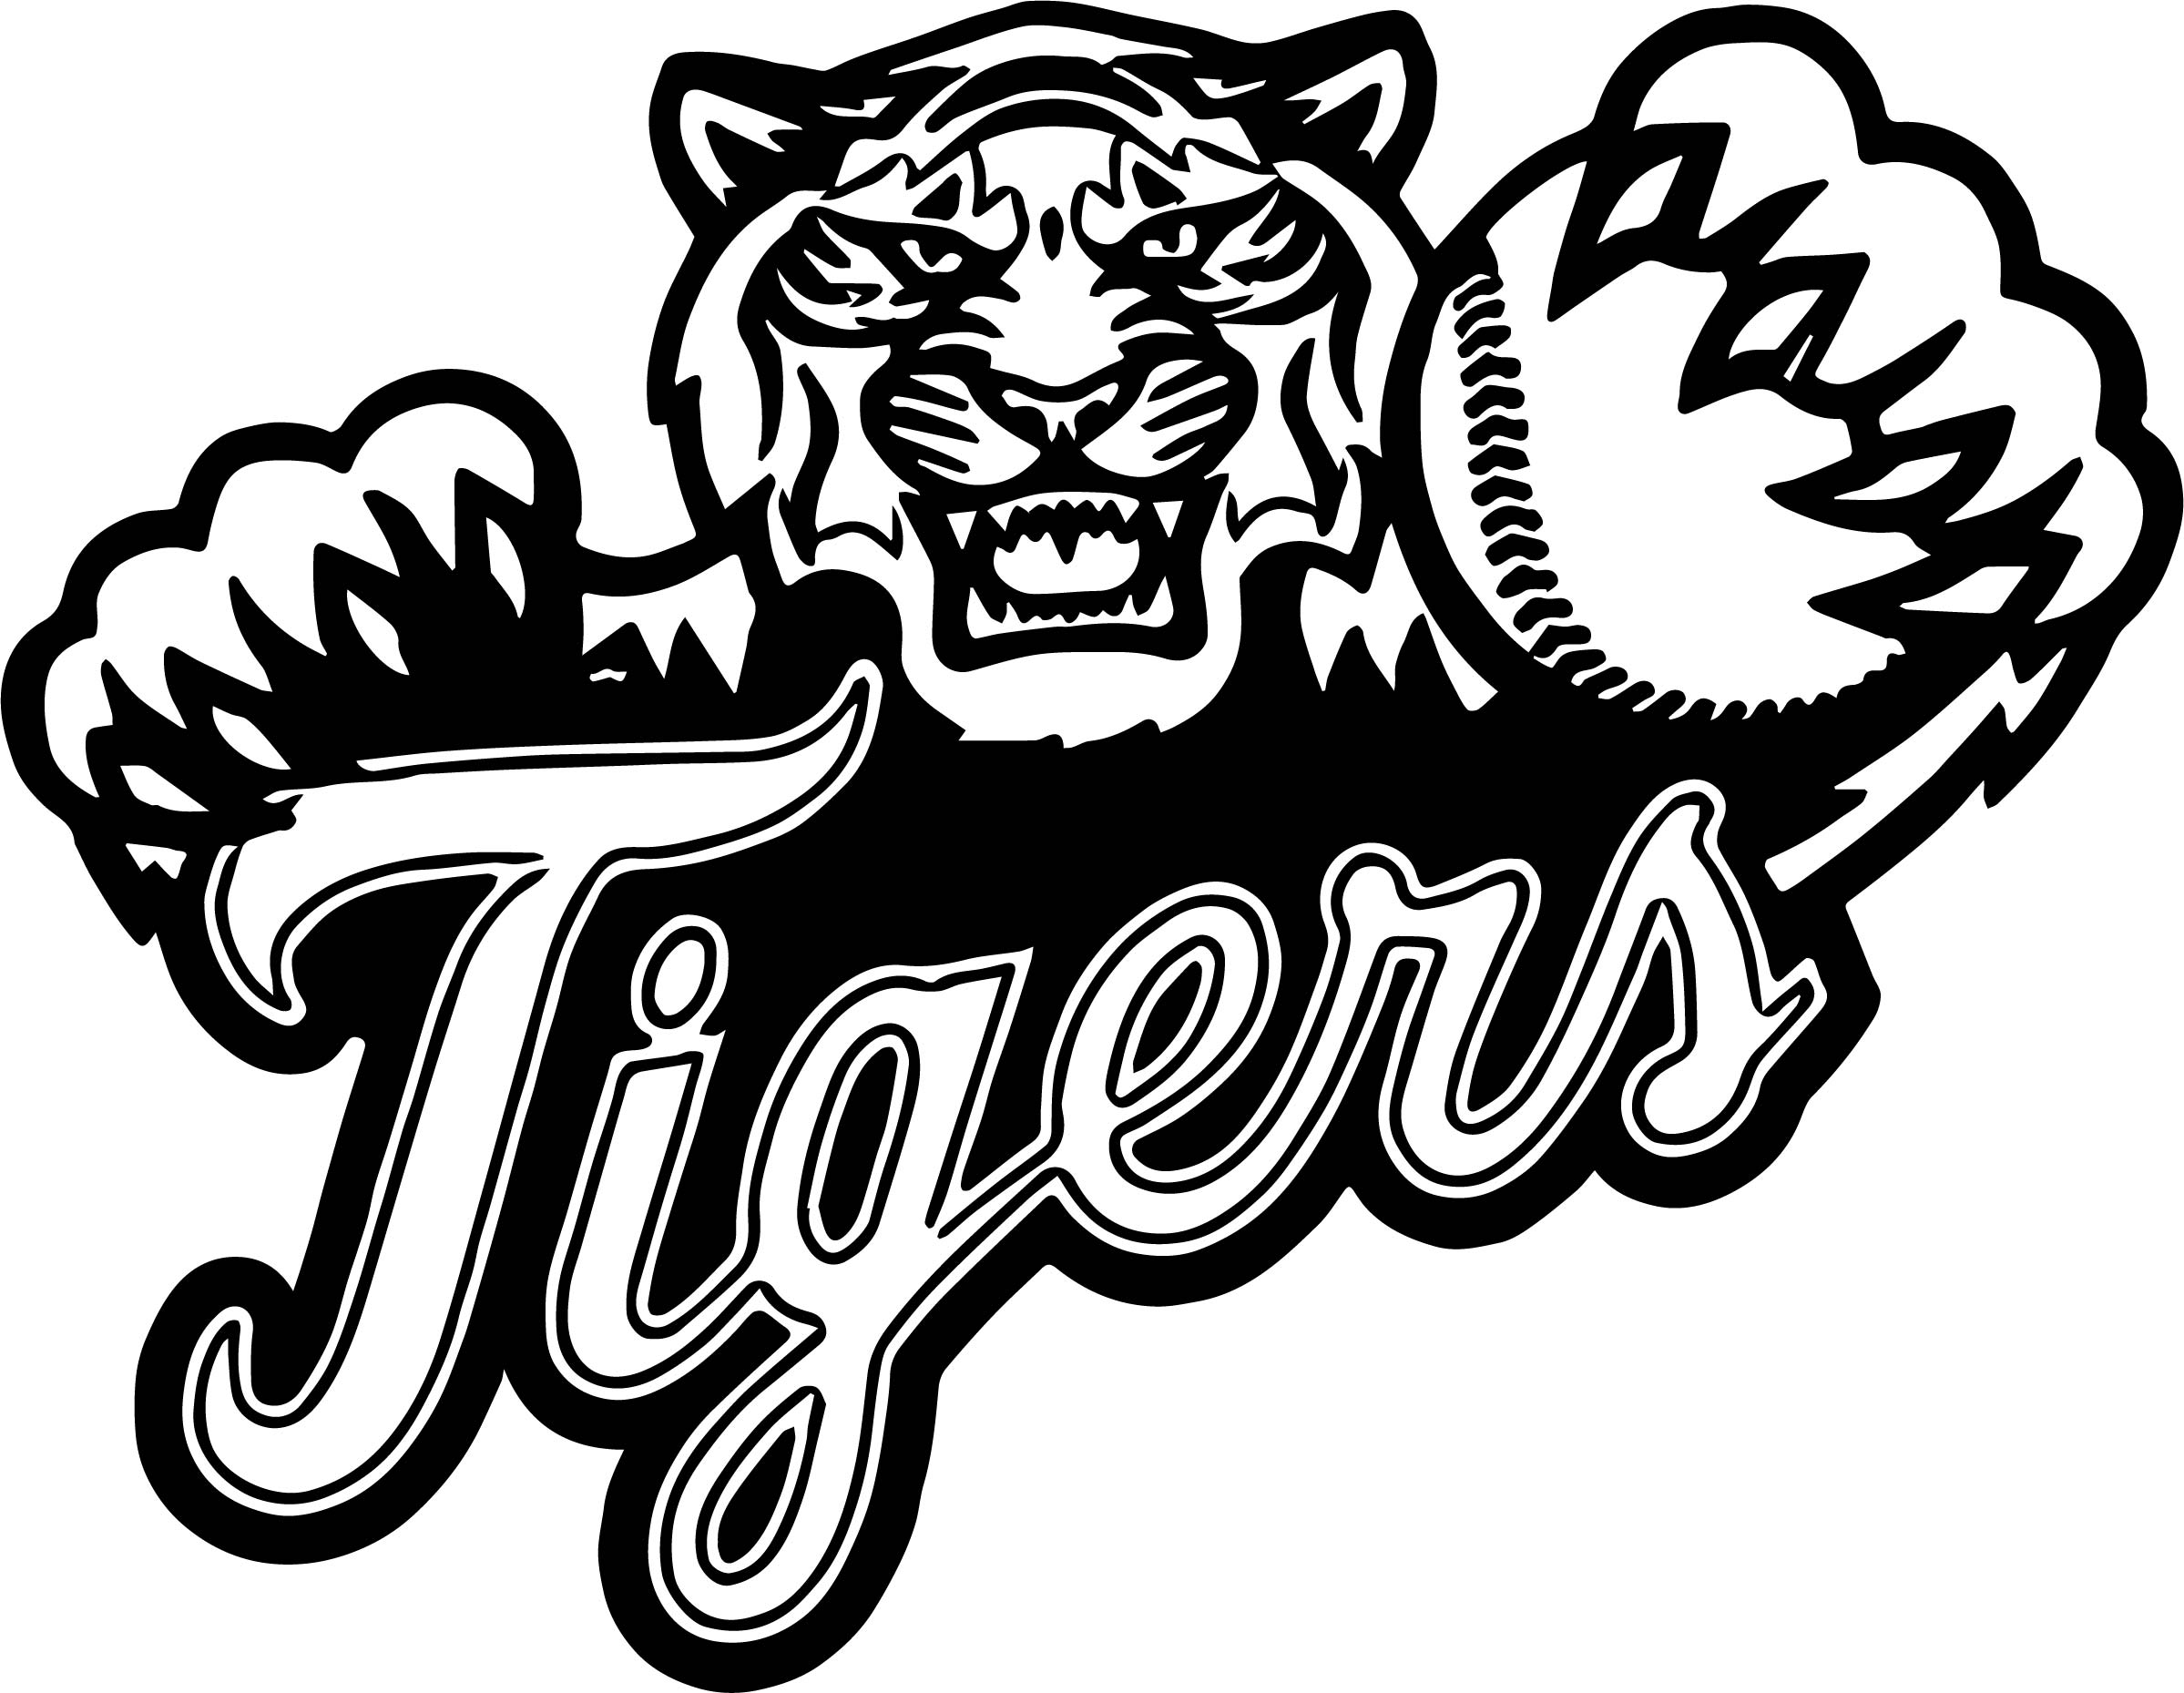 detroit tiger coloring pages - photo#13